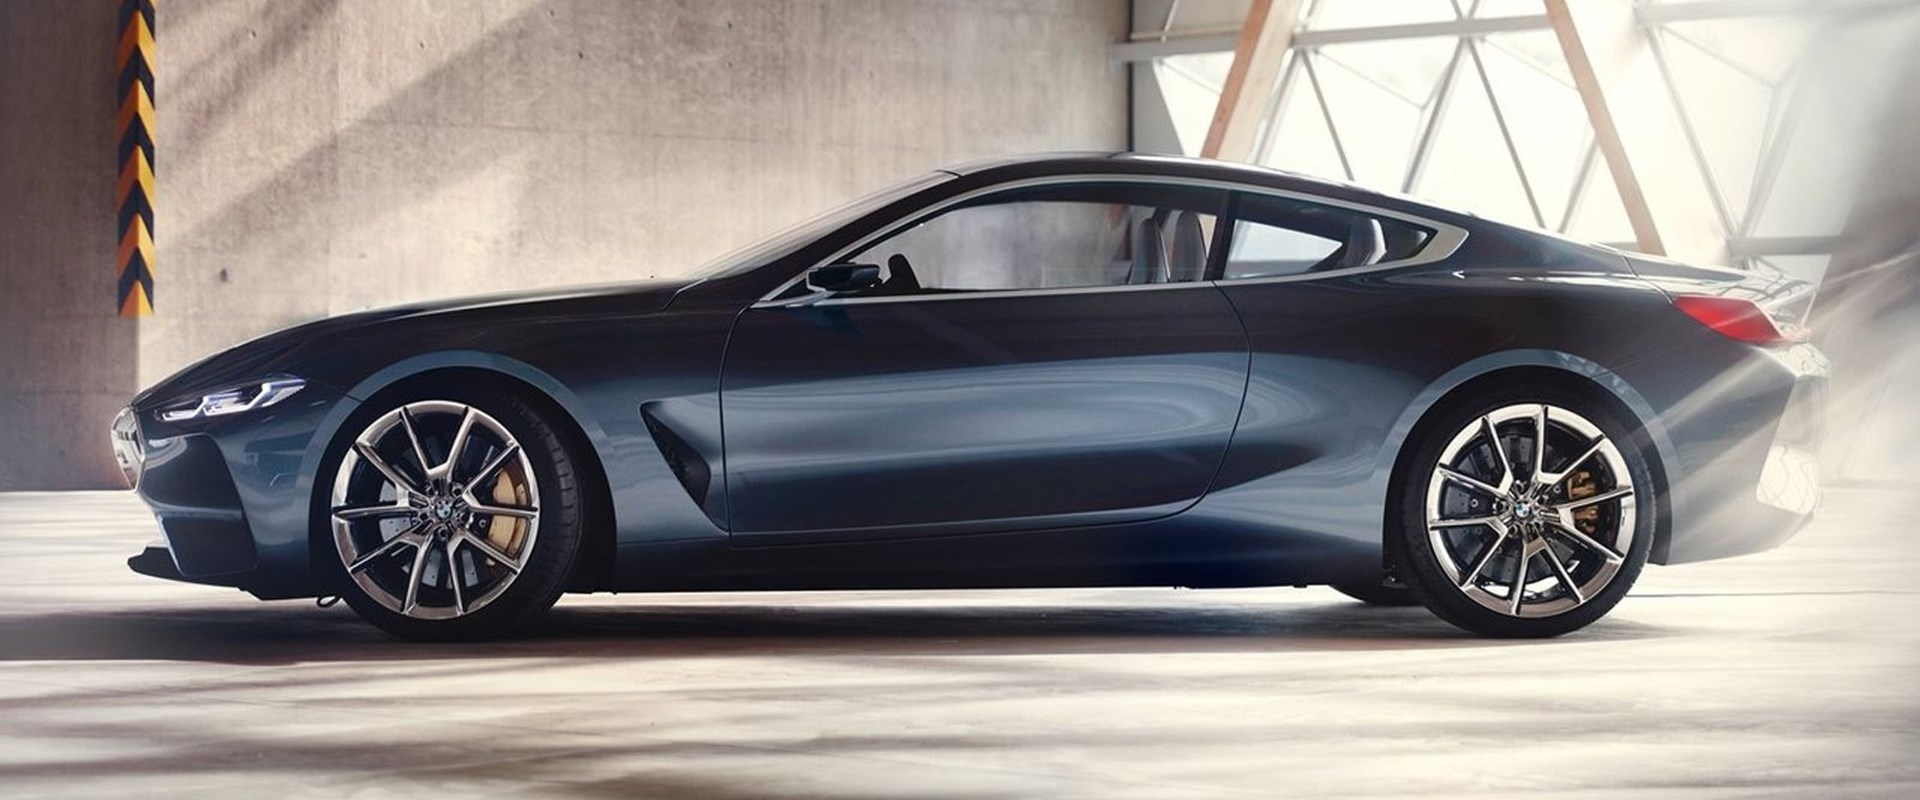 LEAKED: BMW 8 Series Photos Give Us First Look At Sexy Coupe - CarBuzz